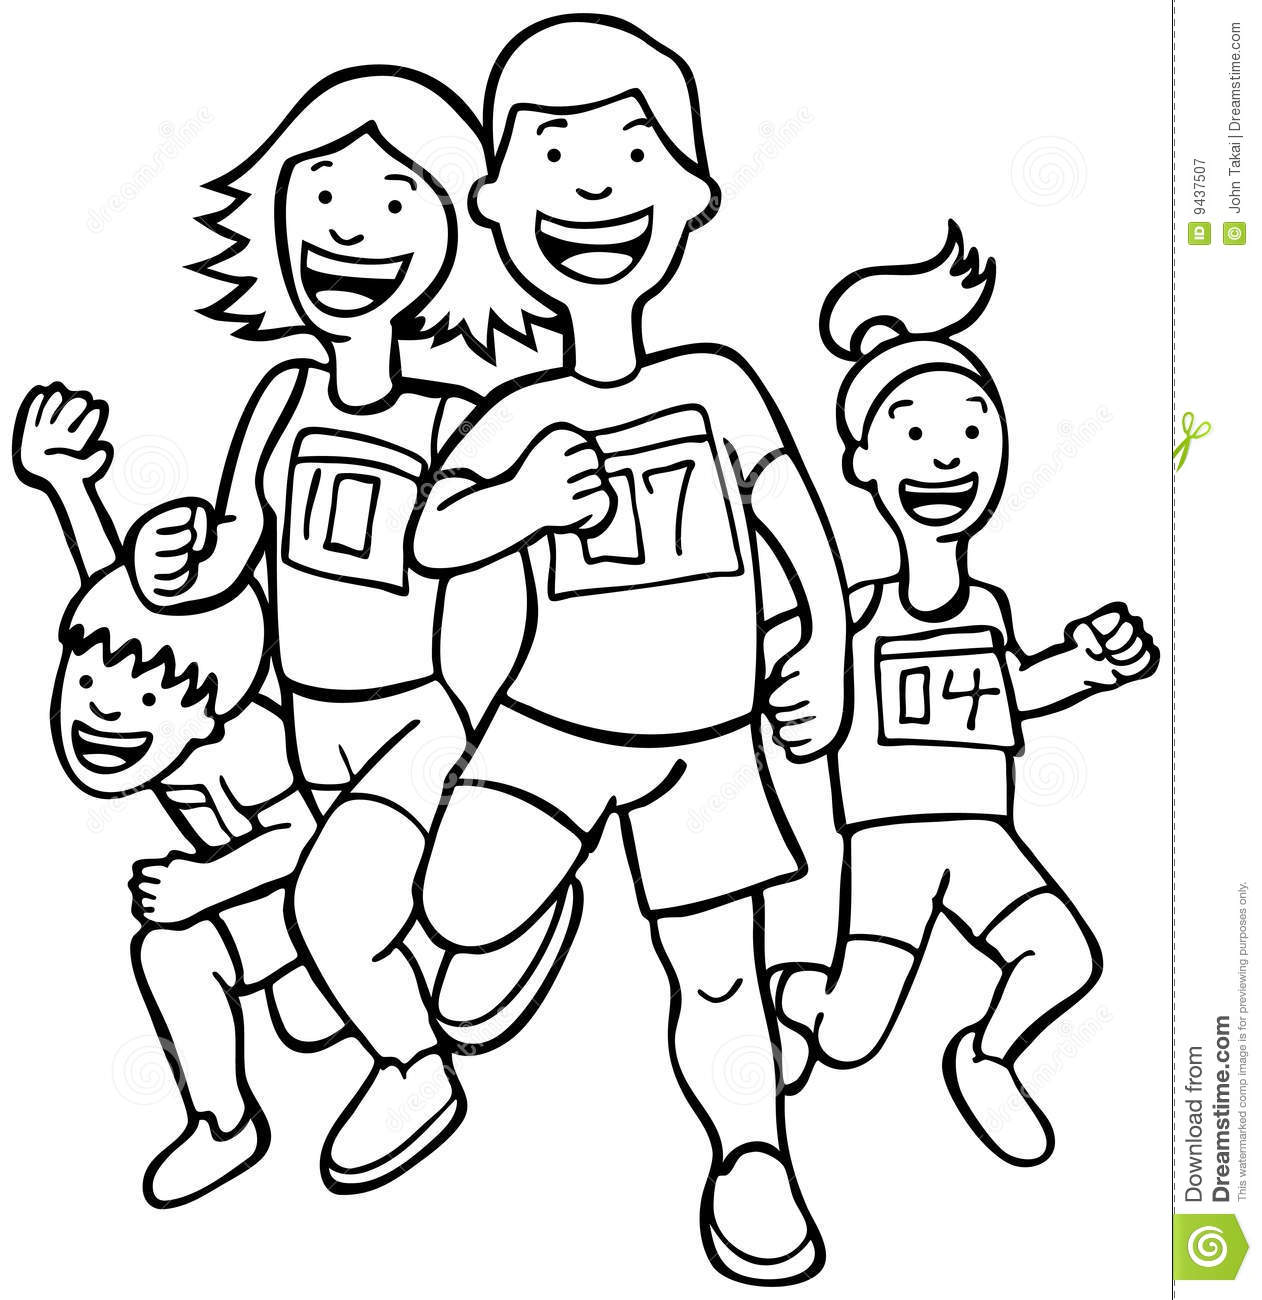 Runners - Black And White Royalty Free Stock Photography - Image ...